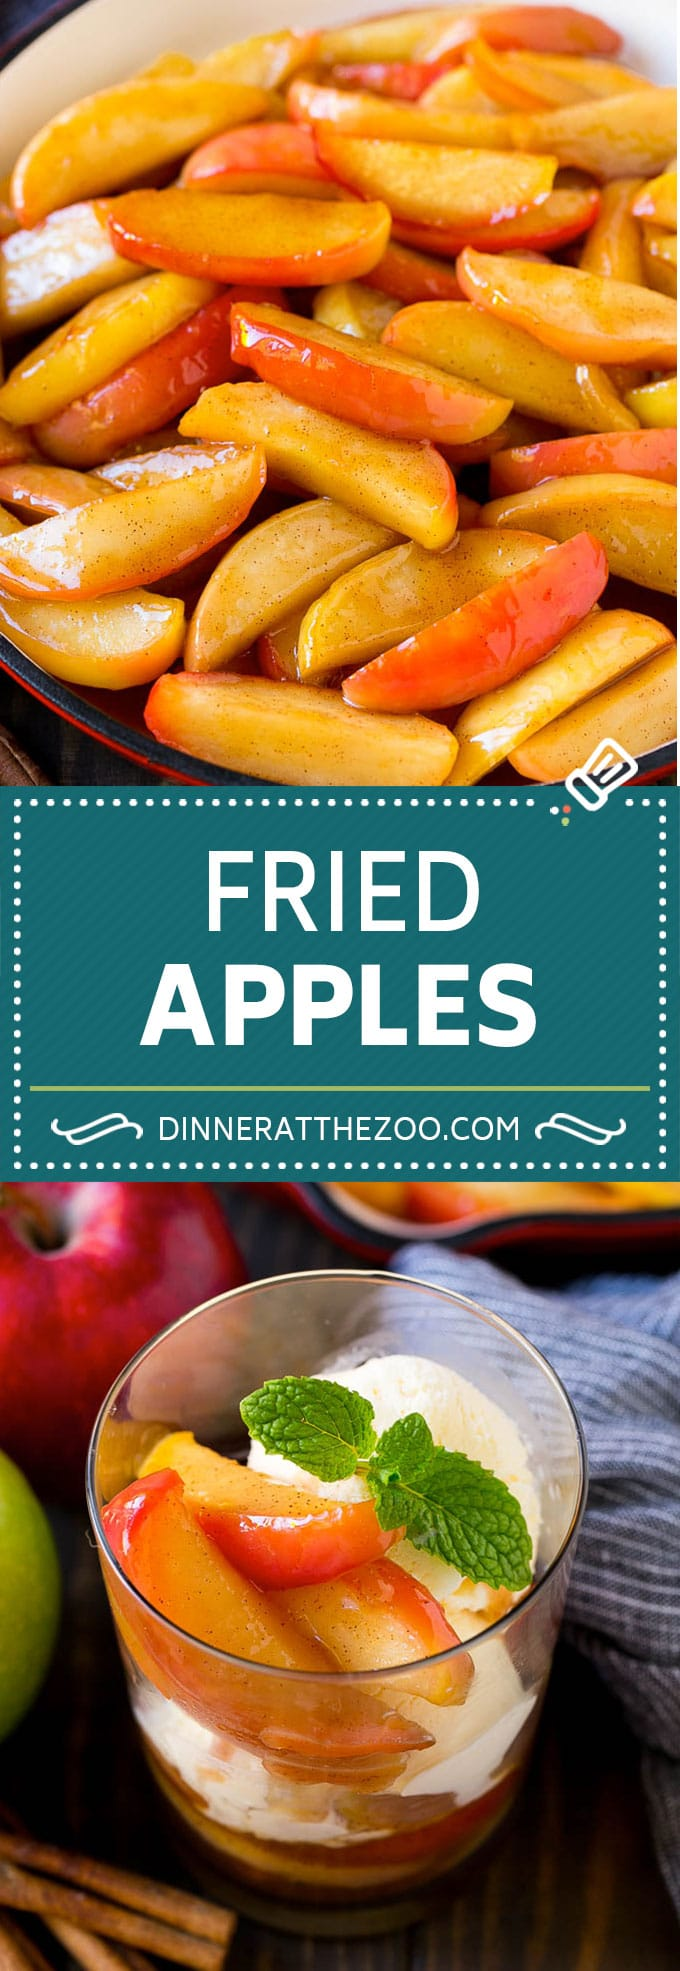 Fried Apples Recipe | Sauteed Apples | Cinnamon Sugar Apples #apples #cinnamon #sugar #sidedish #dessert #dinneratthezoo #fall